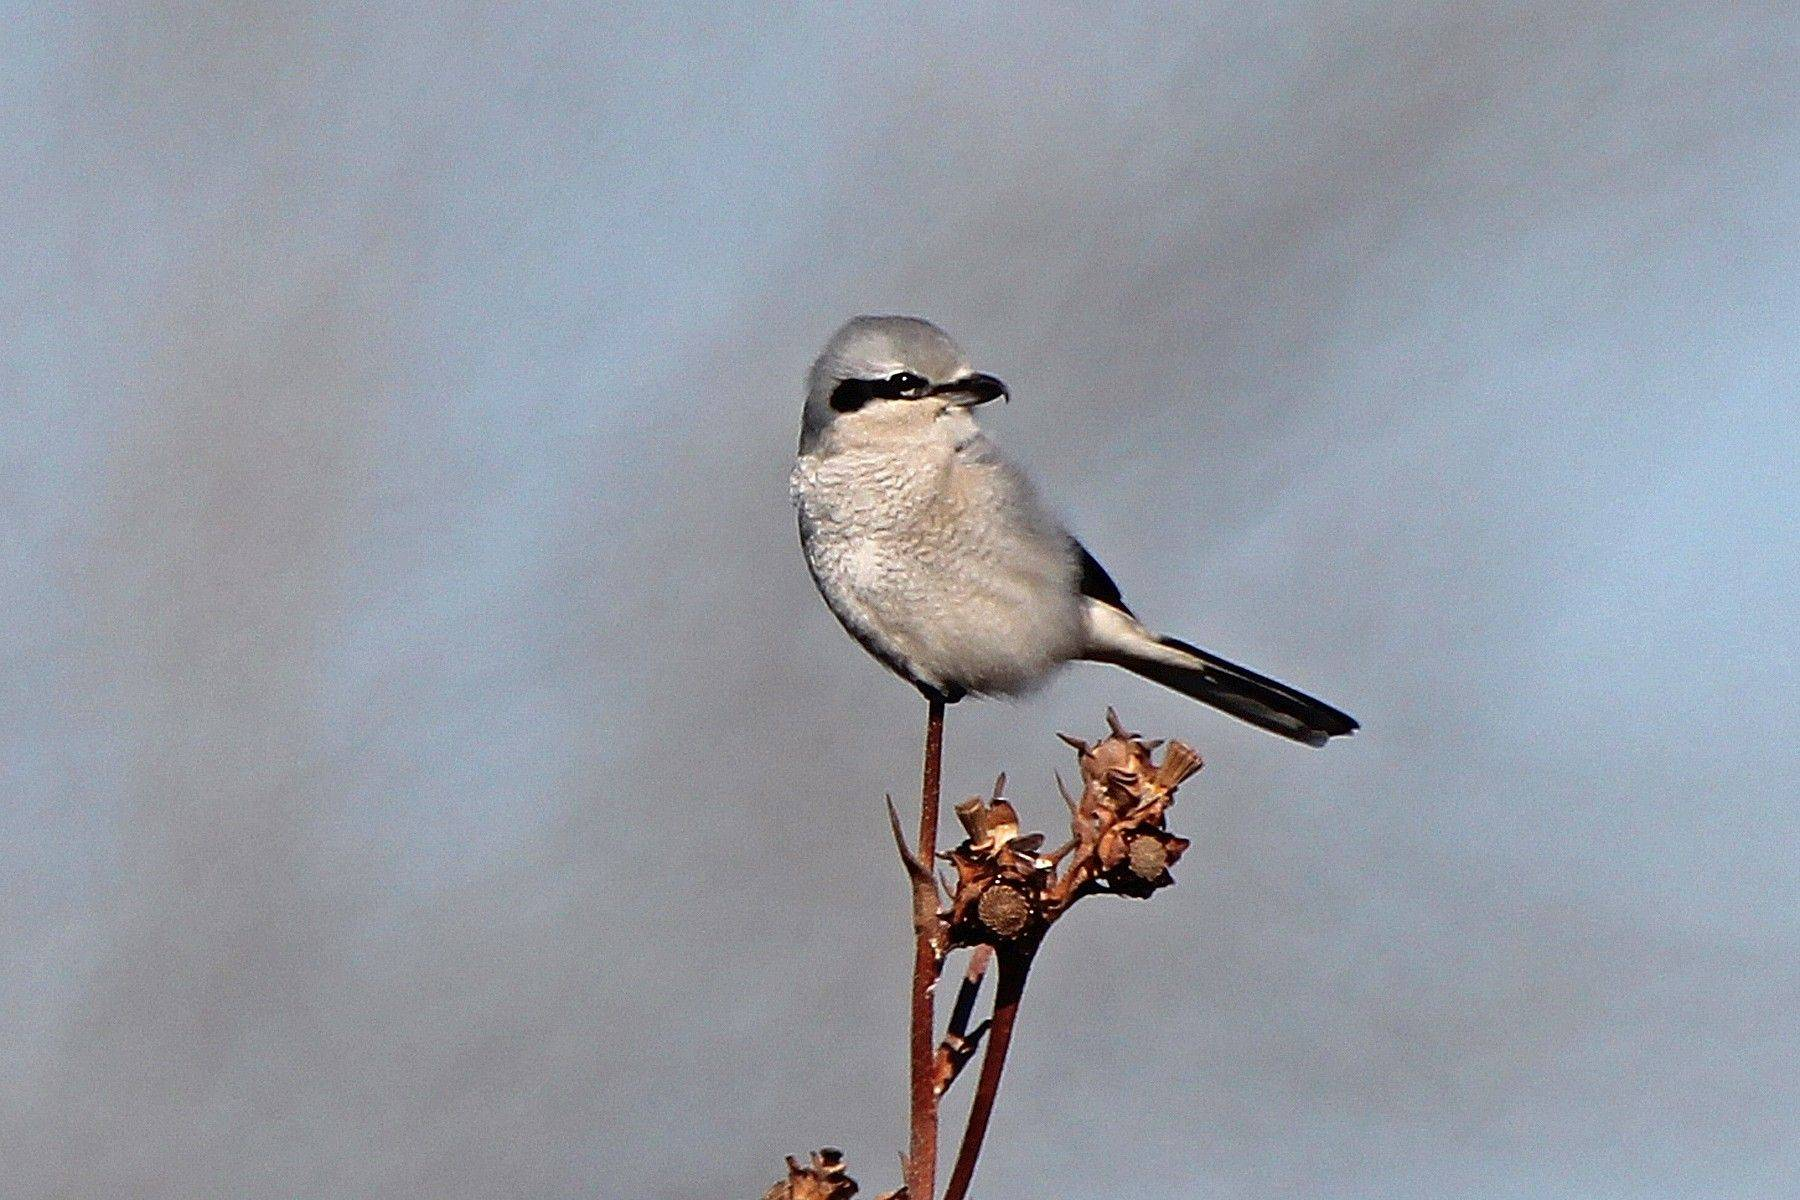 Northern shrike is a winter visitor to this area and always a great find. The species prefers wide open spaces.